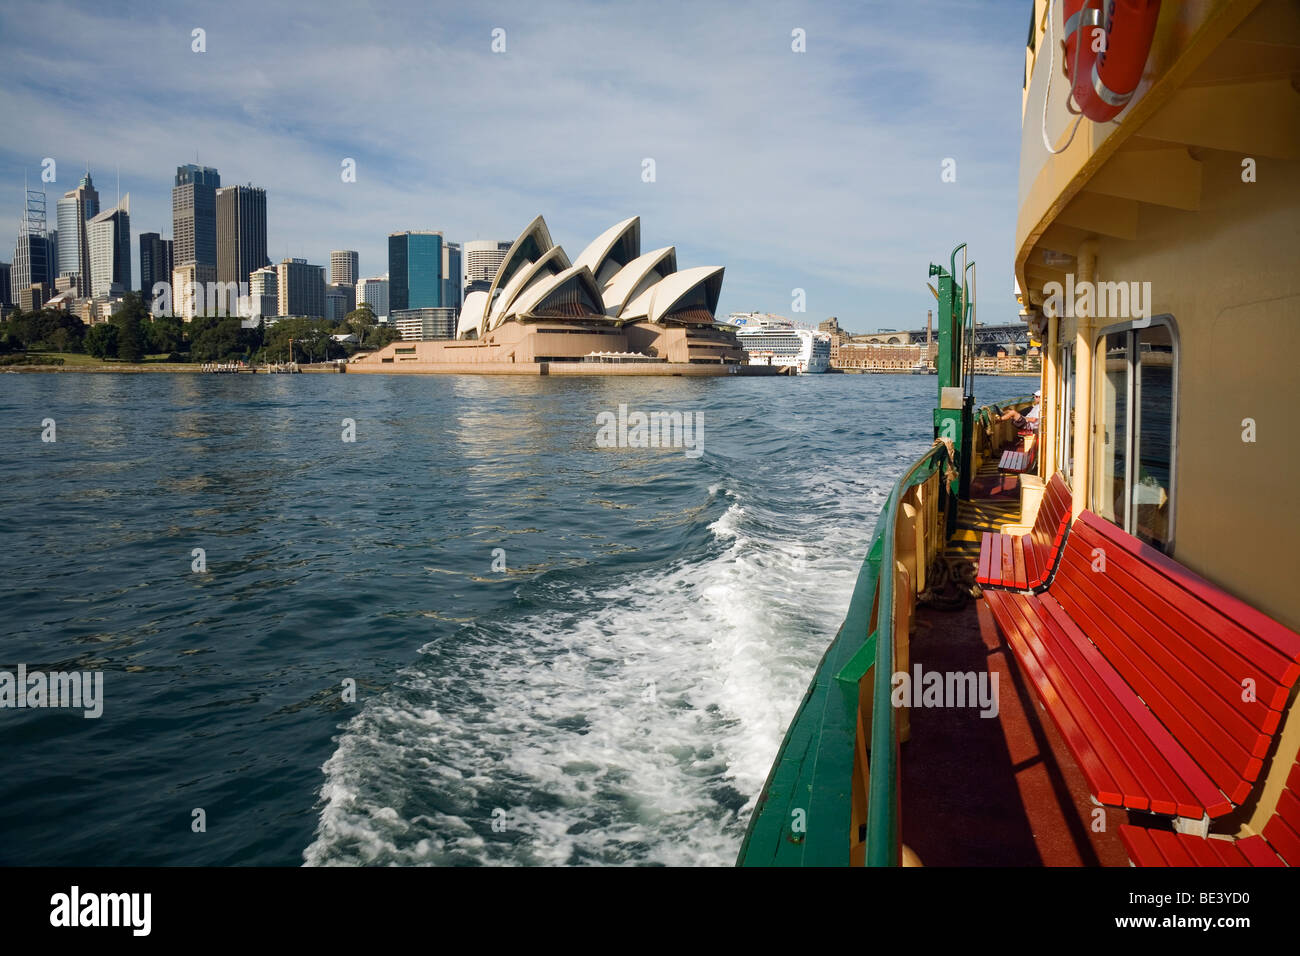 View of the Opera House and city skyline from the deck of a Sydney ferry. Sydney, New South Wales, AUSTRALIA - Stock Image